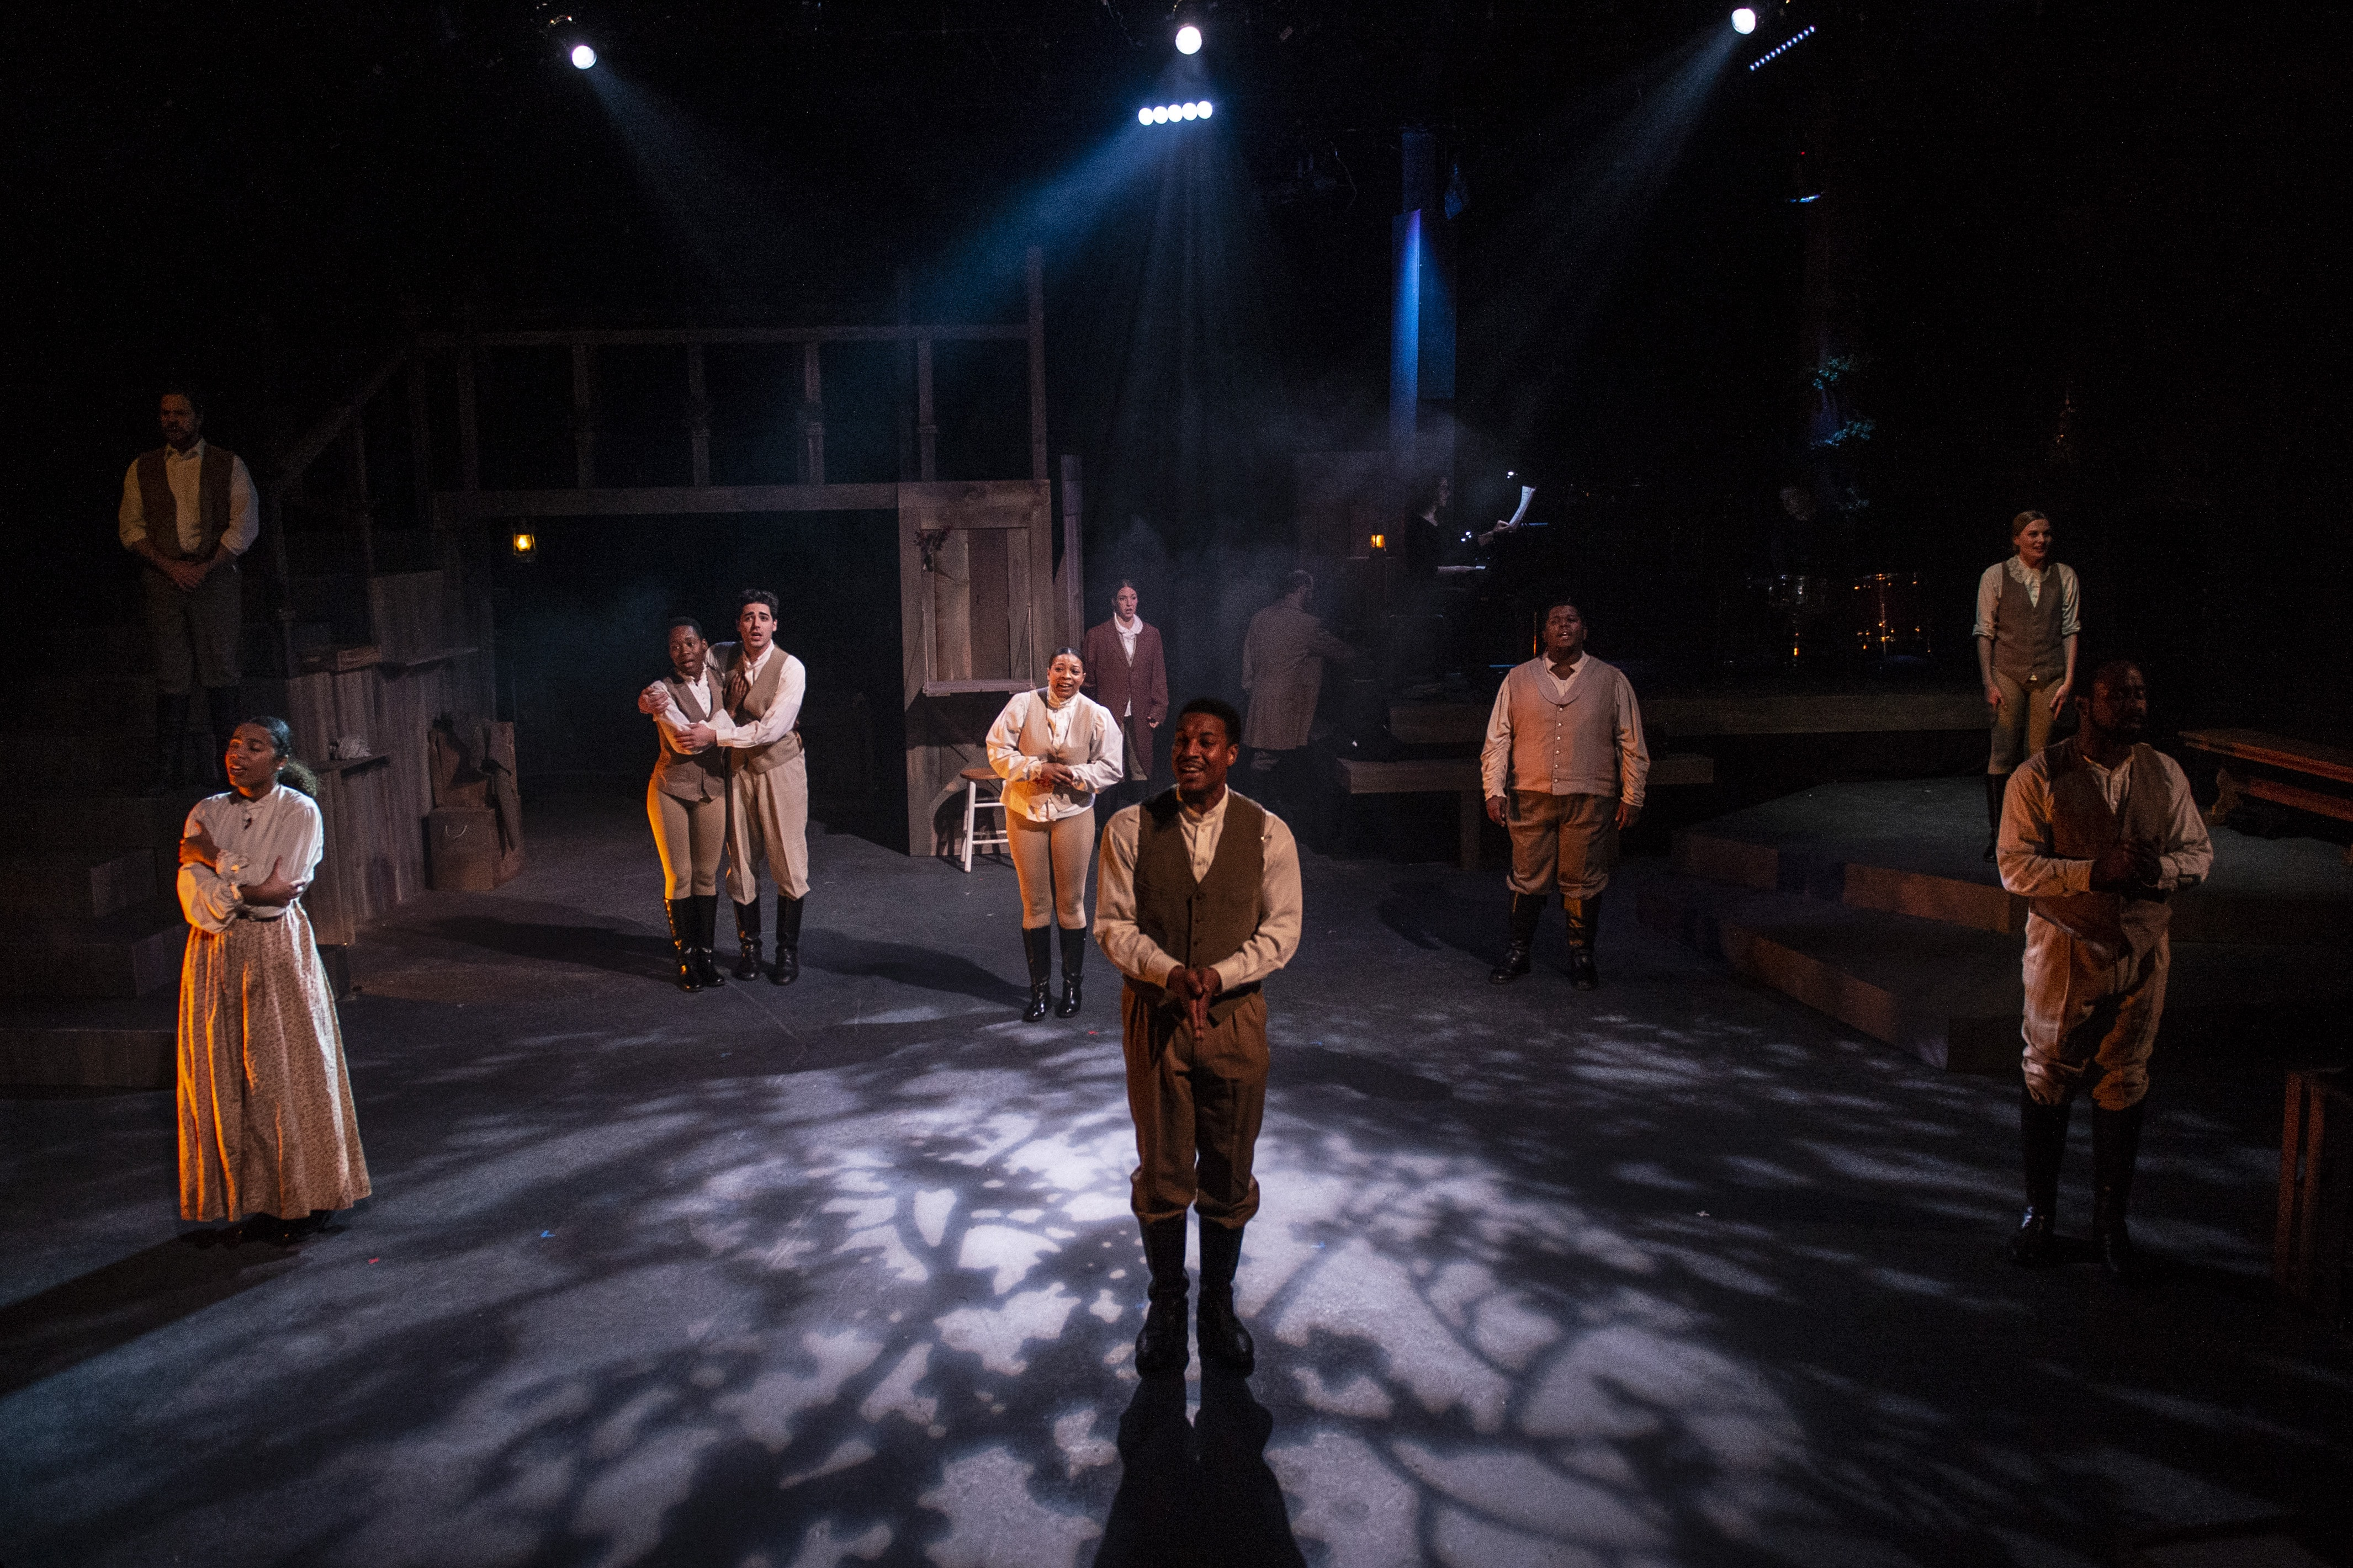 """(l-r) Russell Rinker, Karma Price, Billie Krishawn, Ayanna Hardy, Suzy Alden, Gary L. Perkins III, Joshua Simon, Demitrus Carter, Rebecca Ballinger, and V. Savoy McIlwain in """"A Civil War Christmas"""" at 1st Stage. Photo by Teresa Castracane."""